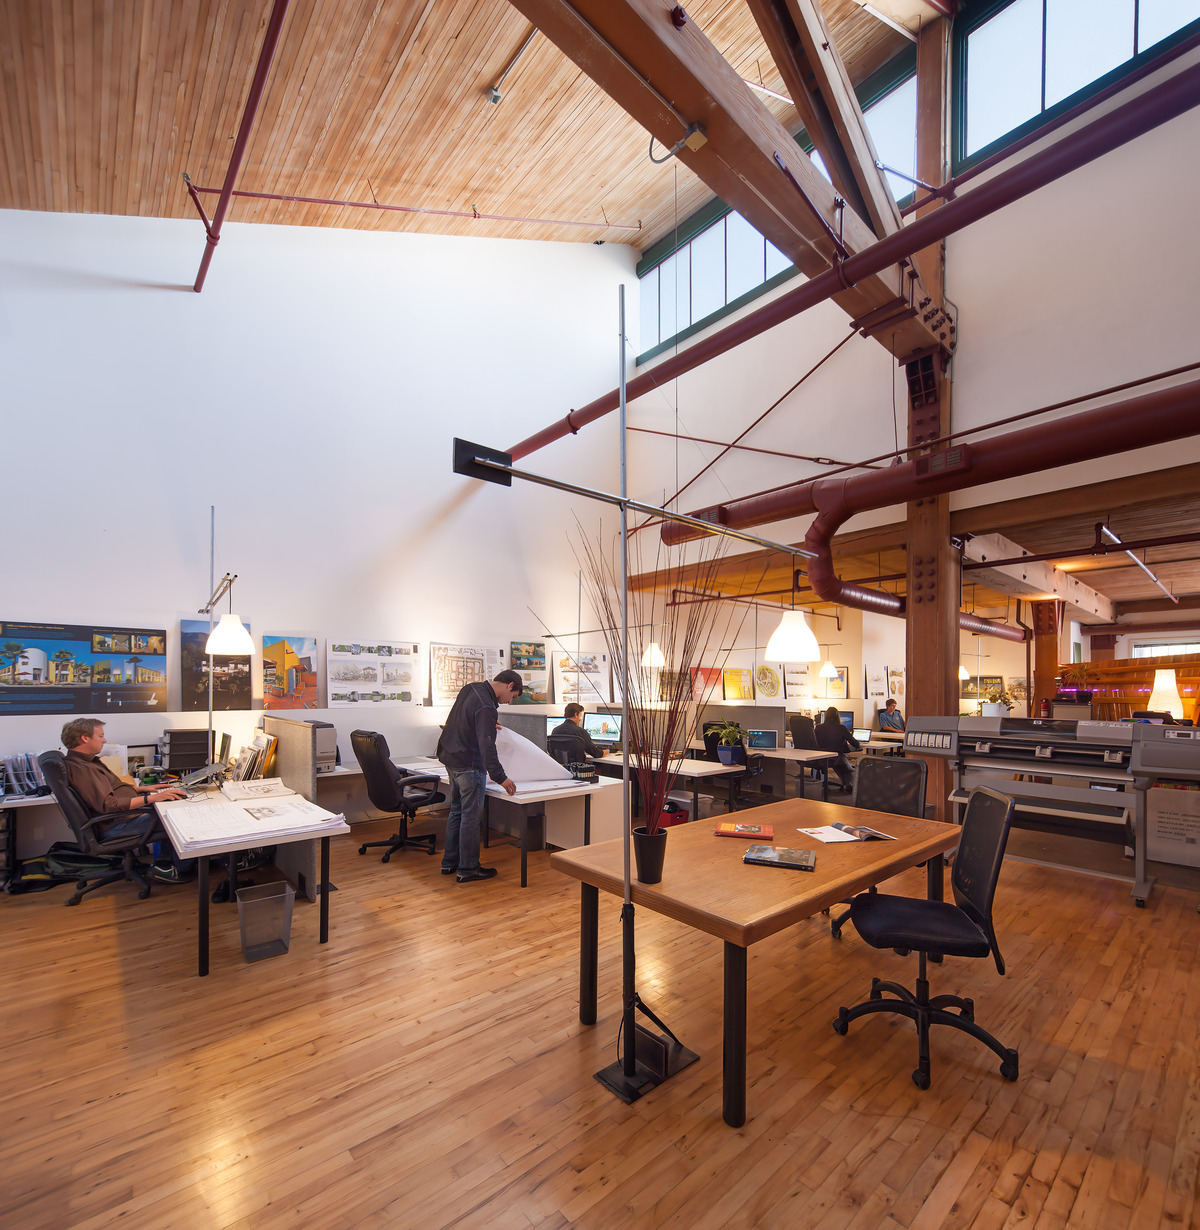 Architectural Office + Work Space